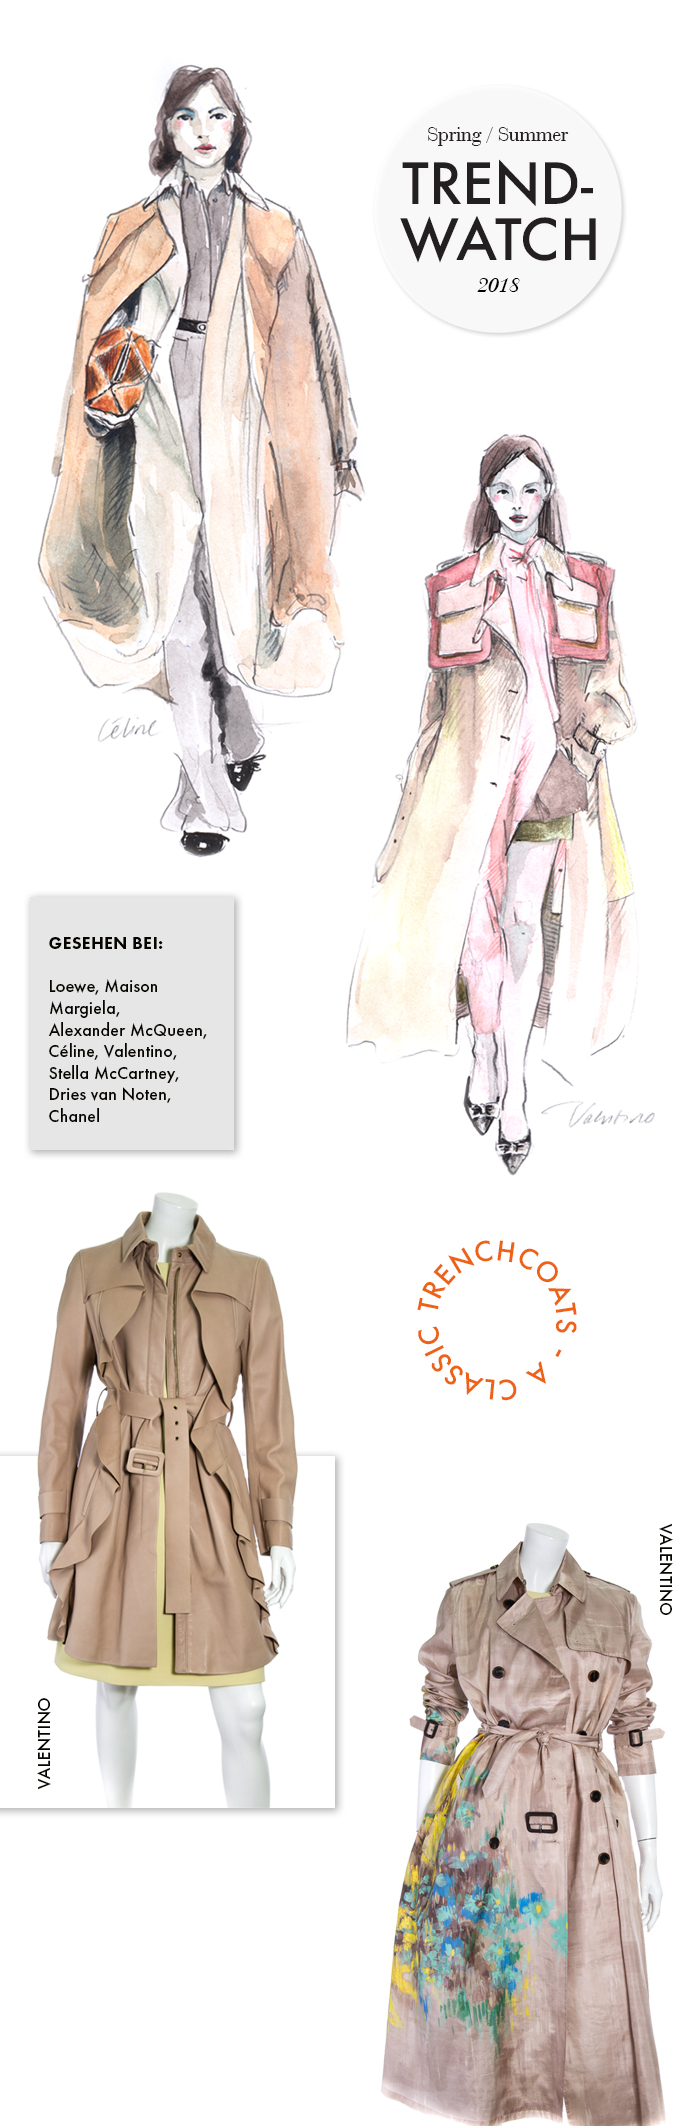 Trendwatch Spring/Summer 2018 - Trenchcoats